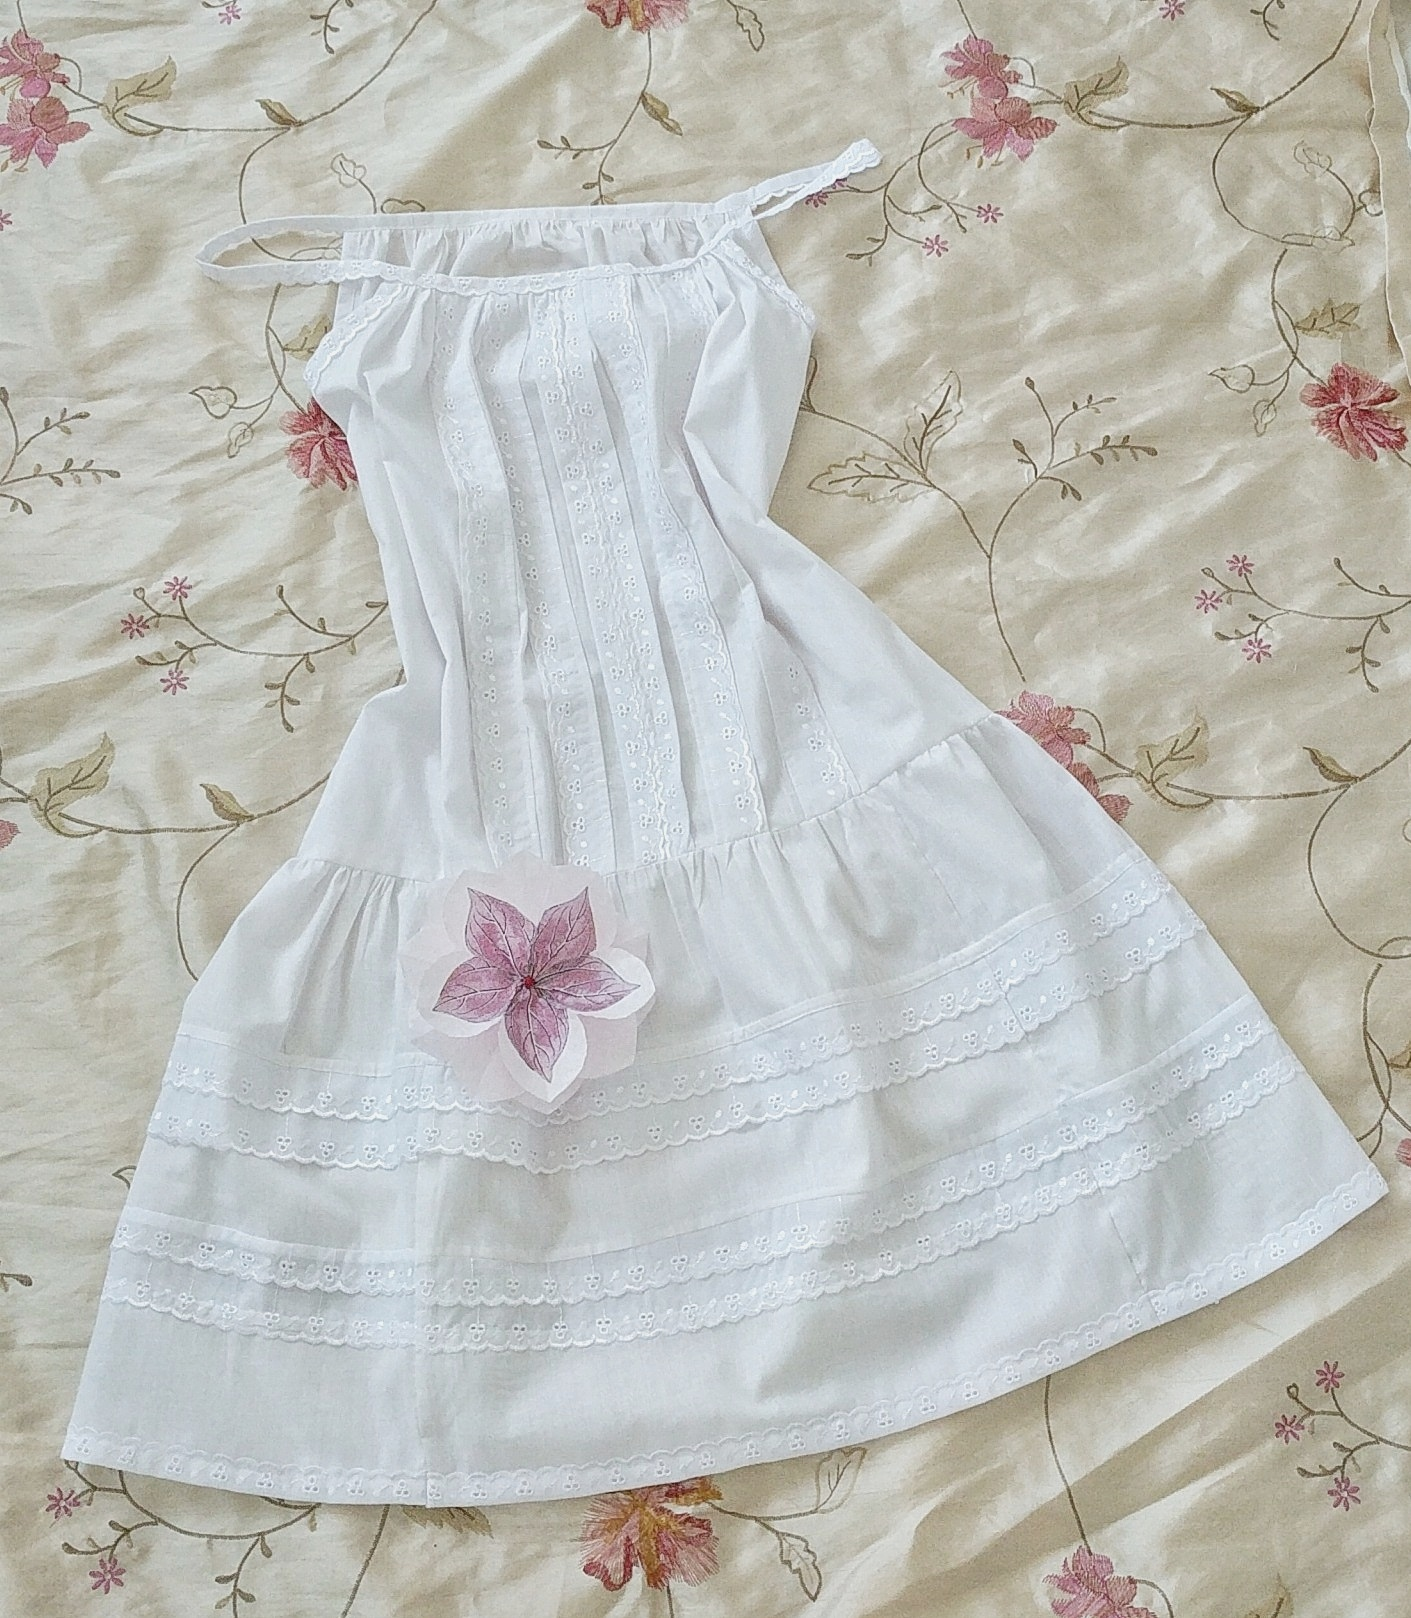 Summer Nightie - Made with the scraps from my granddaughter's bassinet skirt. Her mummy's sleeping pretty.